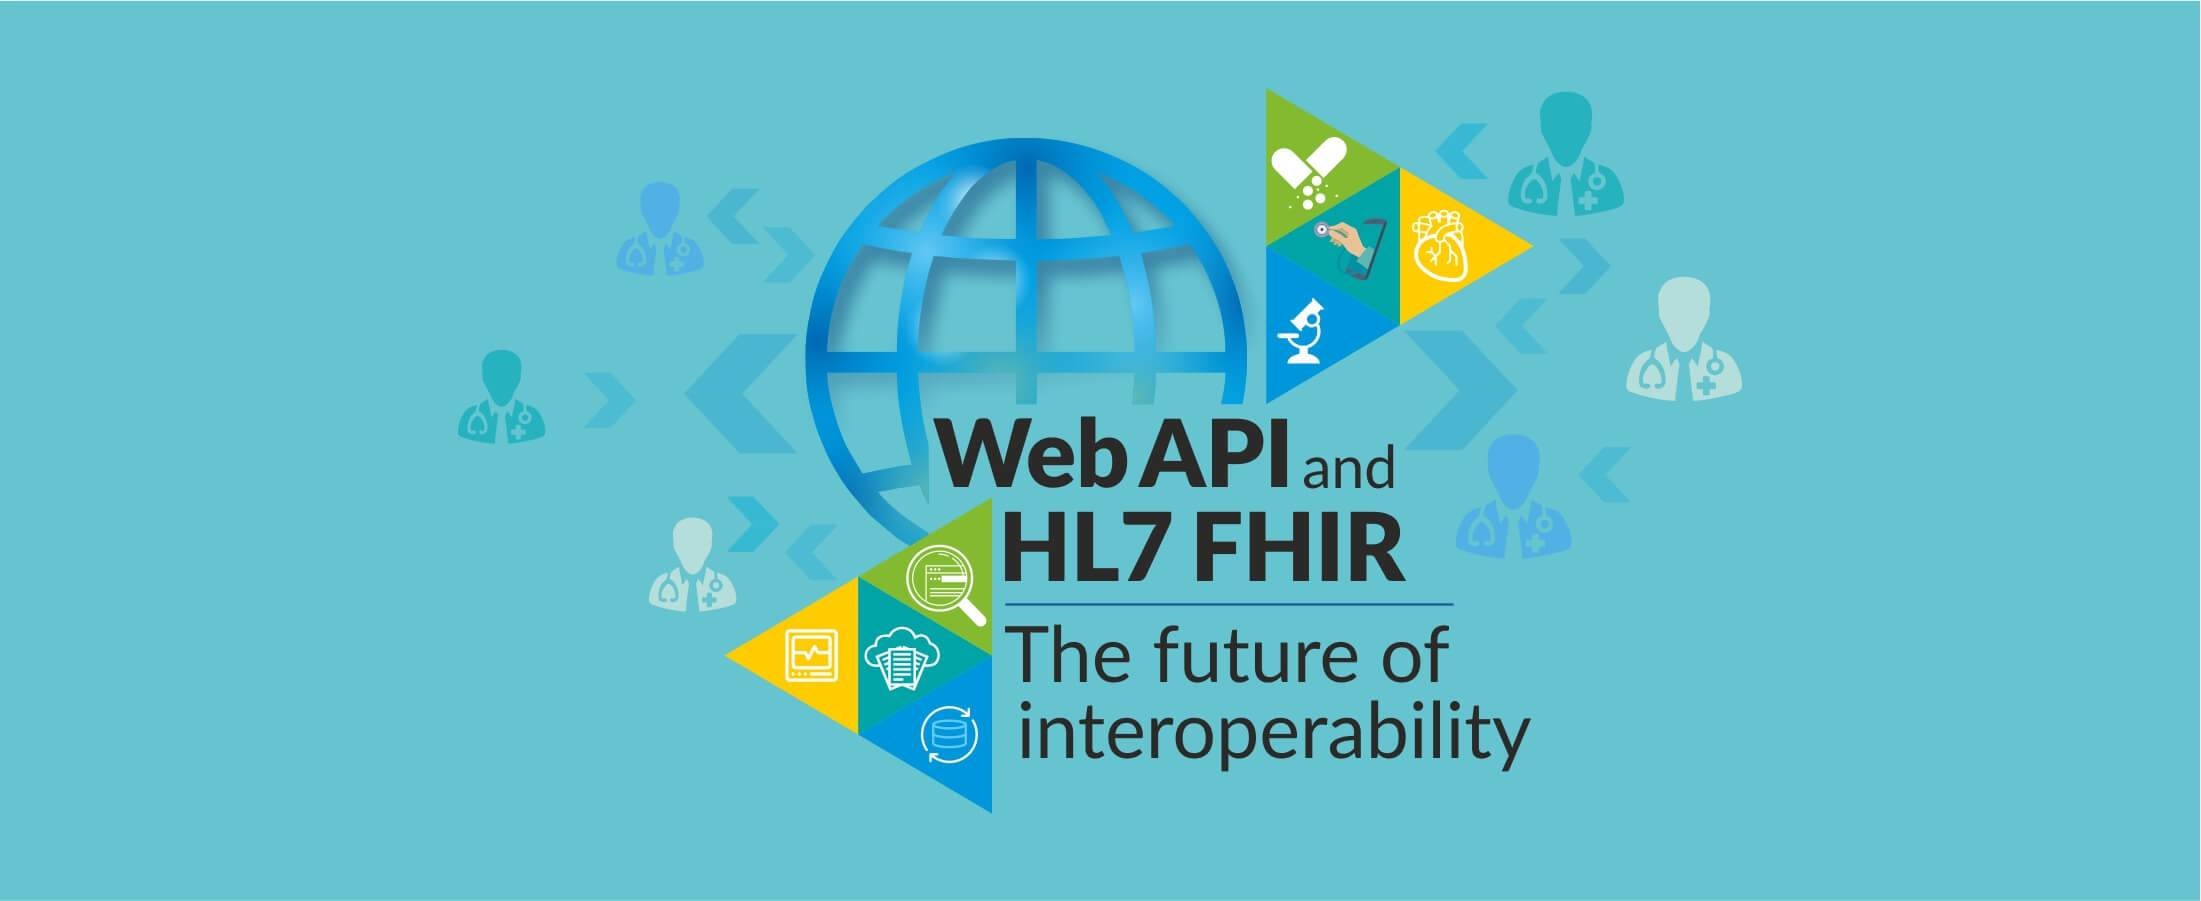 Mobifilia - Web API and HL7 FHIR - The Future of Interoperability